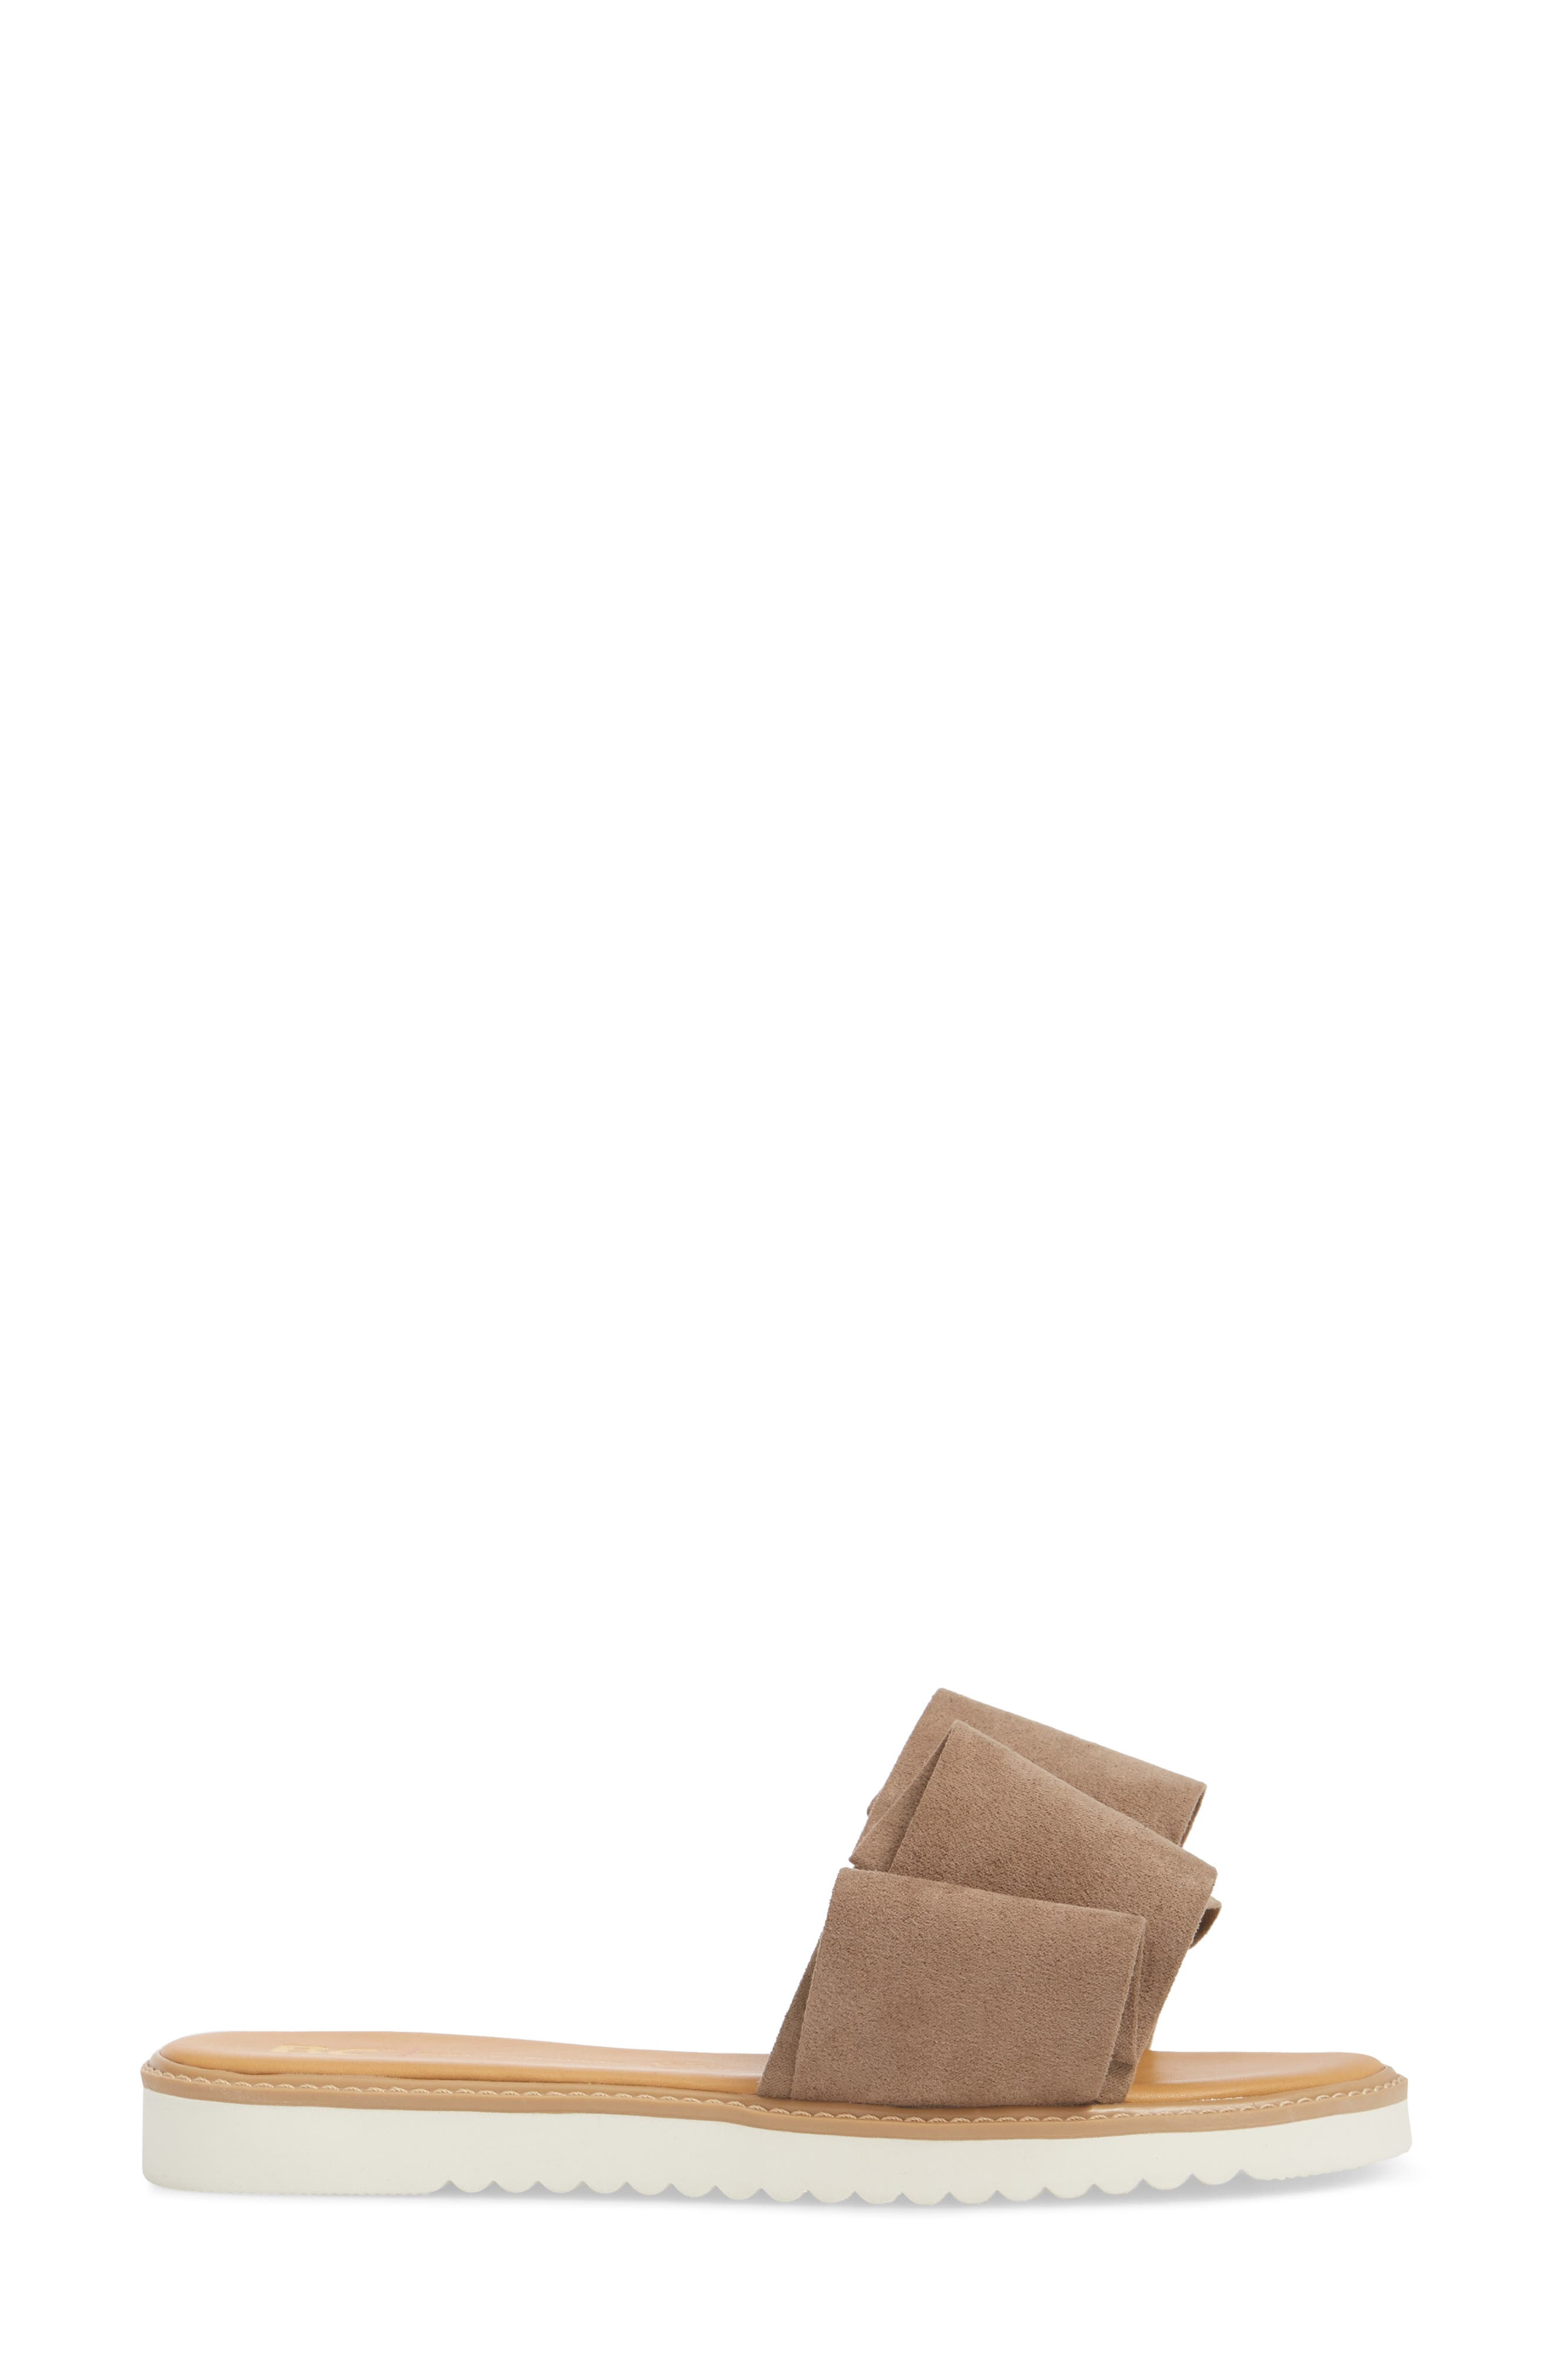 Fun for All Ages Pleated Sandal,                             Alternate thumbnail 3, color,                             TAUPE SUEDE